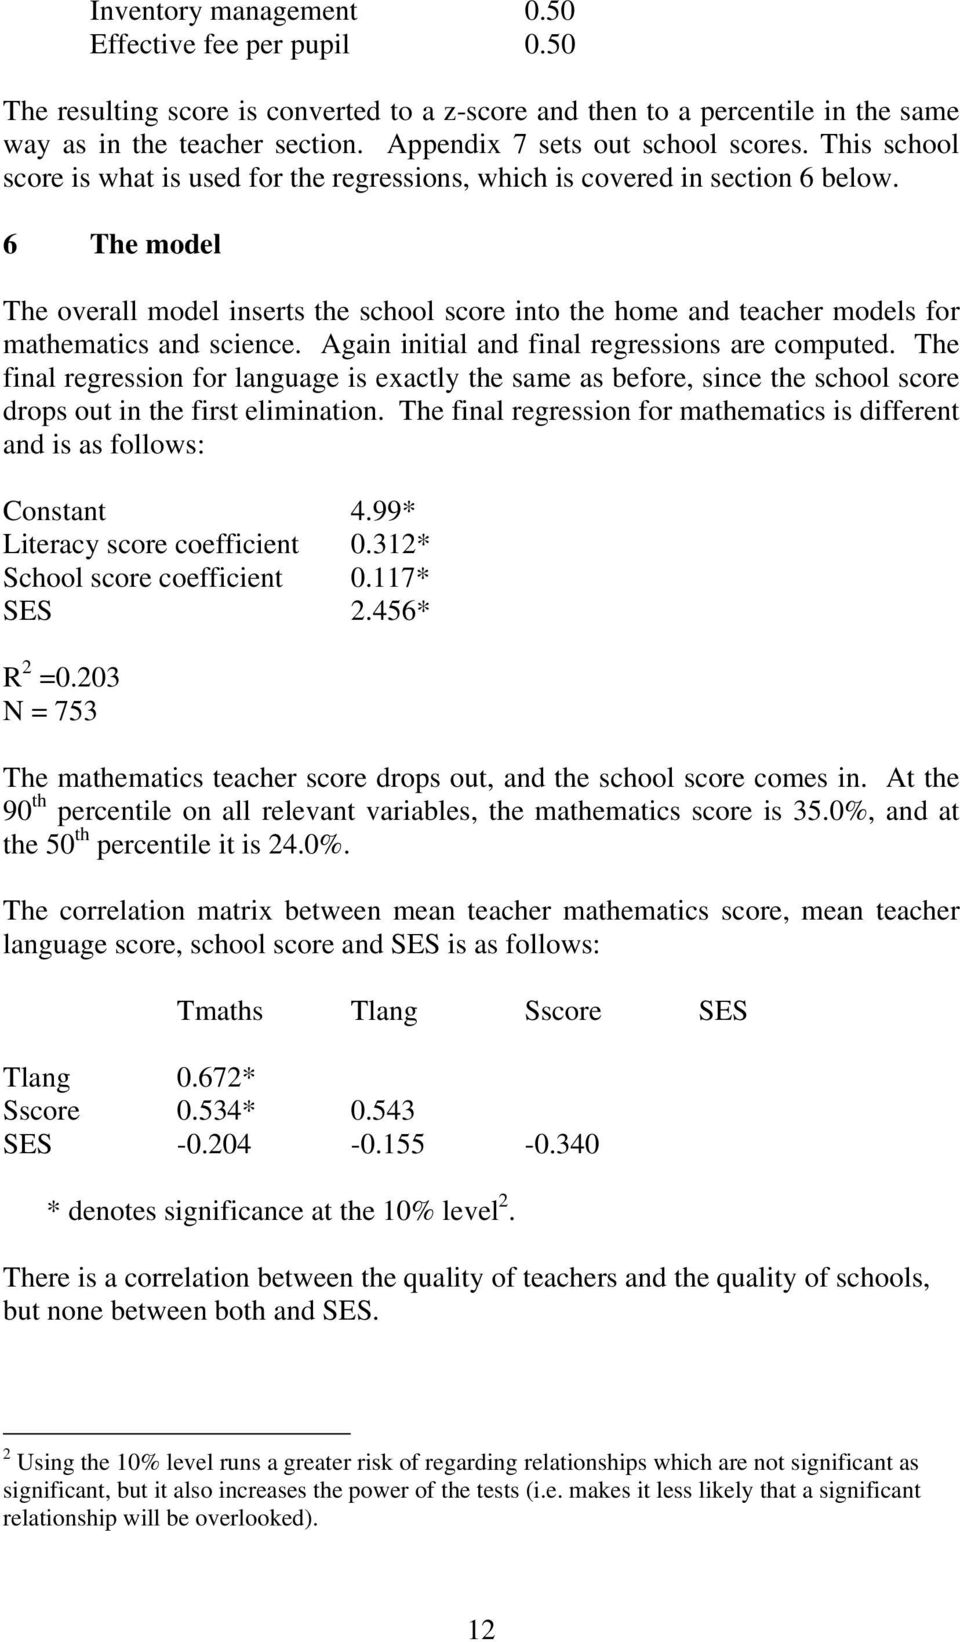 6 The model The overall model inserts the school score into the home and teacher models for mathematics and science. Again initial and final regressions are computed.